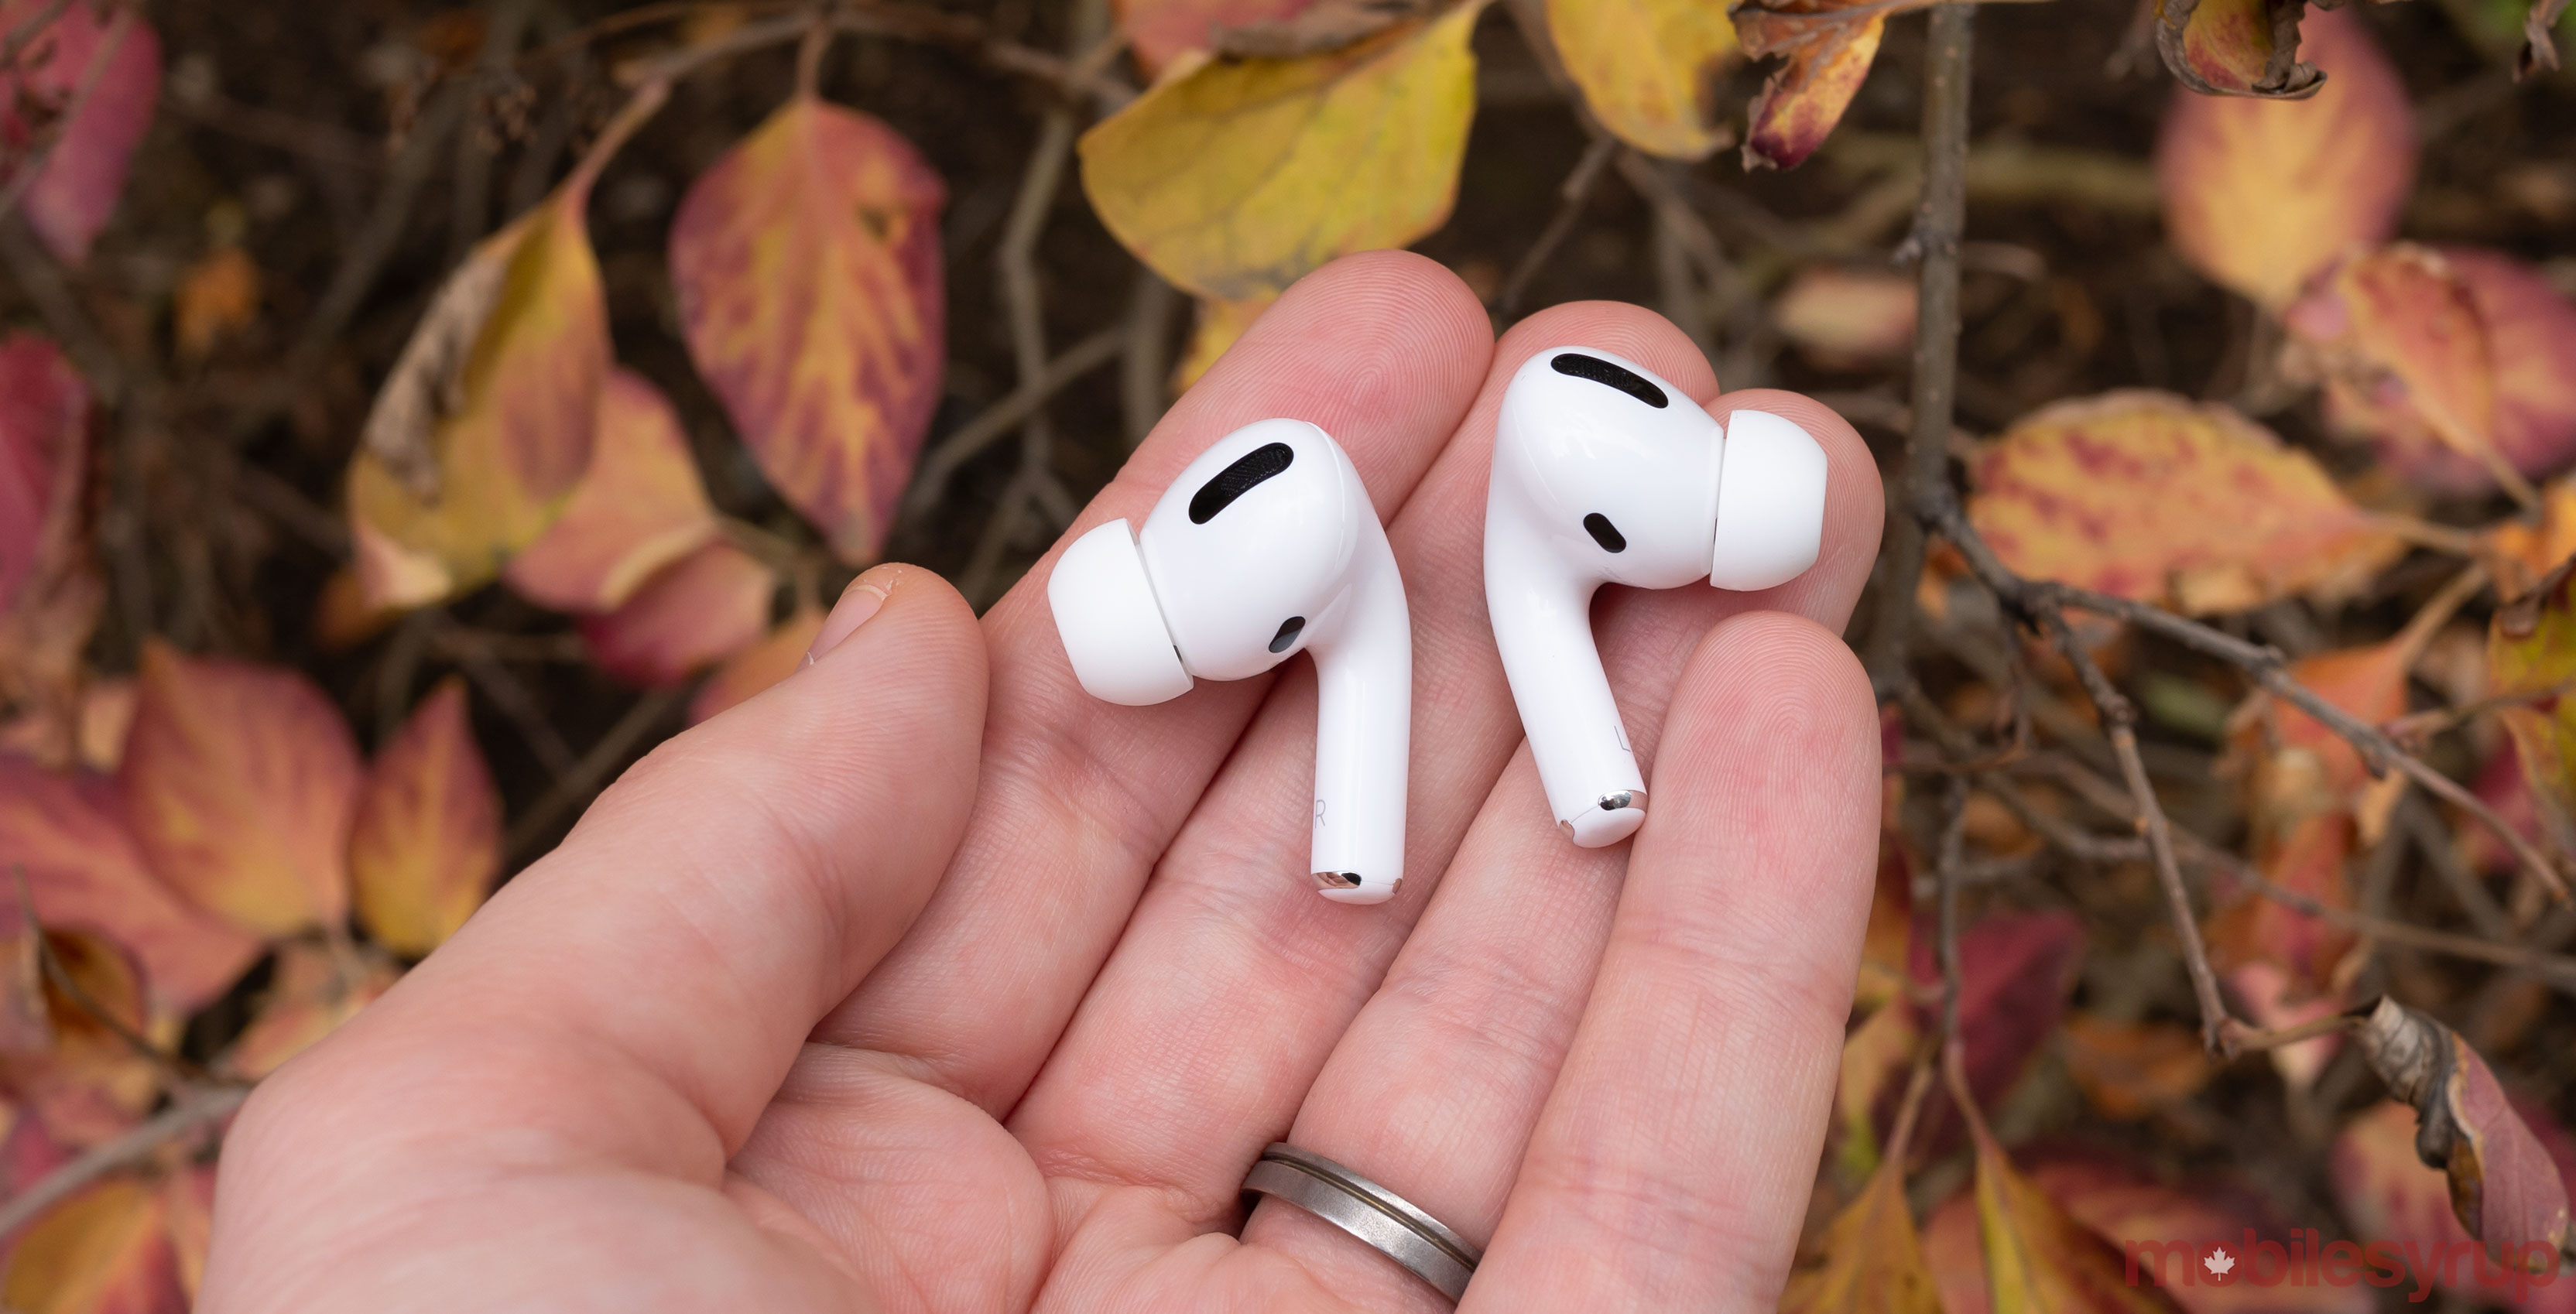 Pranksters are putting Apple AirPods stickers on the ground